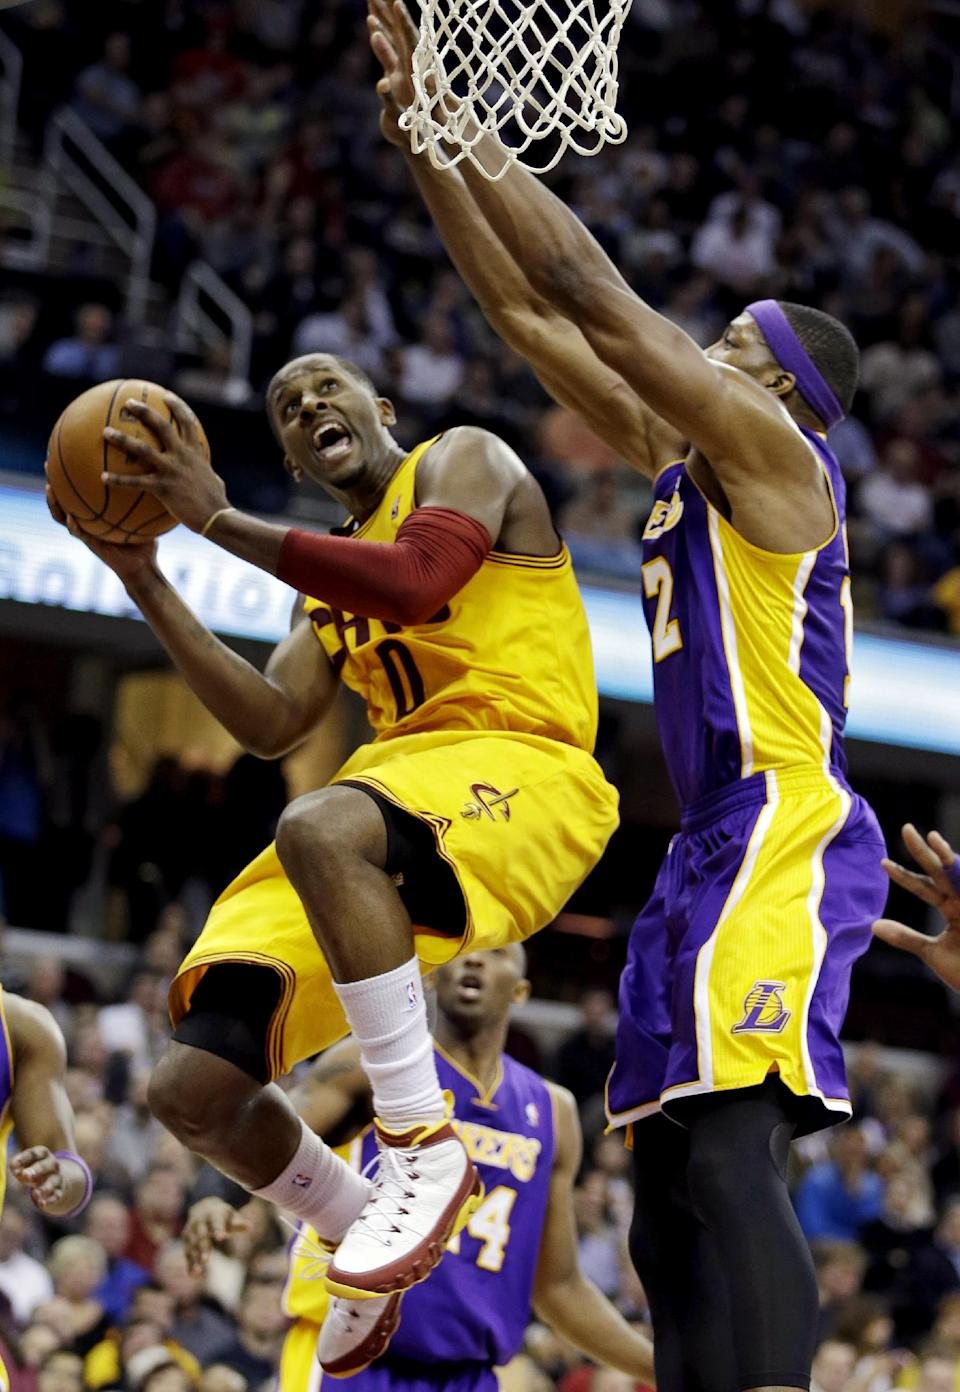 Cleveland Cavaliers' C.J. Miles, left, goes in for a shot against Los Angeles Lakers' Dwight Howard in the second quarter of an NBA basketball game, Tuesday, Dec. 11, 2012, in Cleveland. (AP Photo/Mark Duncan)